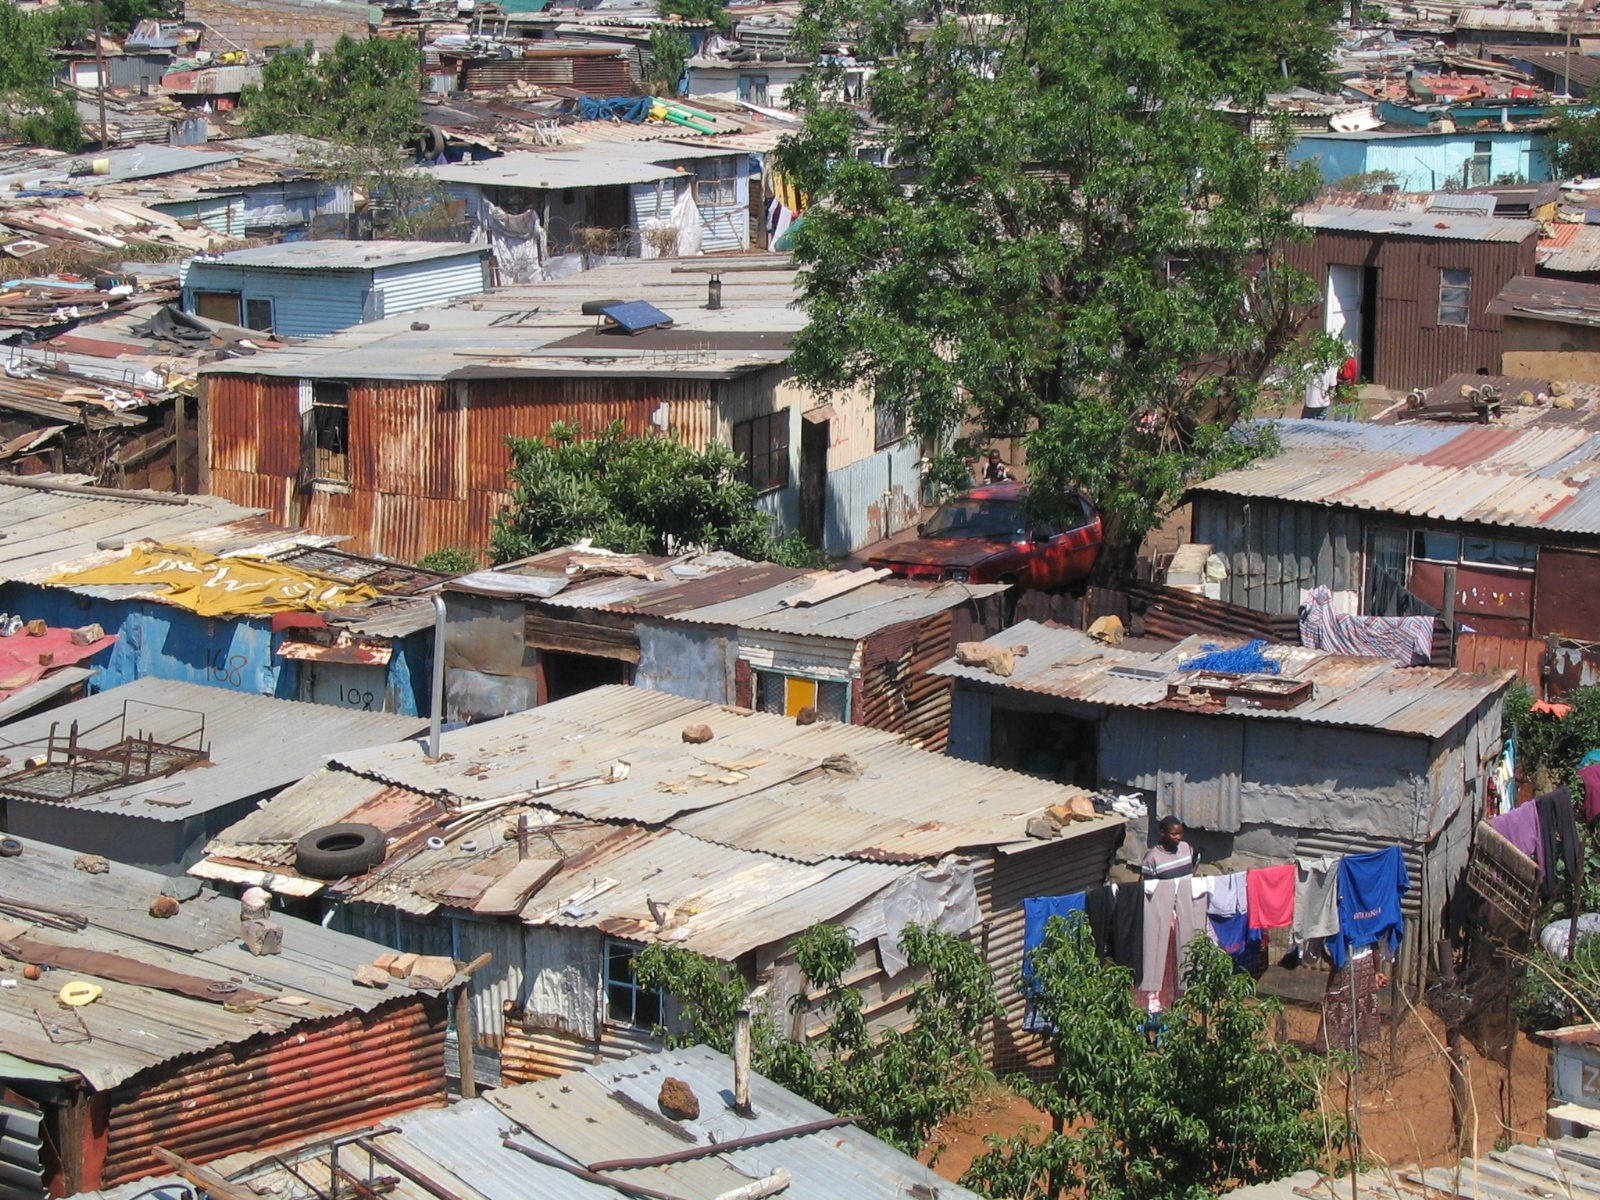 Improves Sanitation in Communities That Lack Plumbing, such as the Soweto Township in South Africa